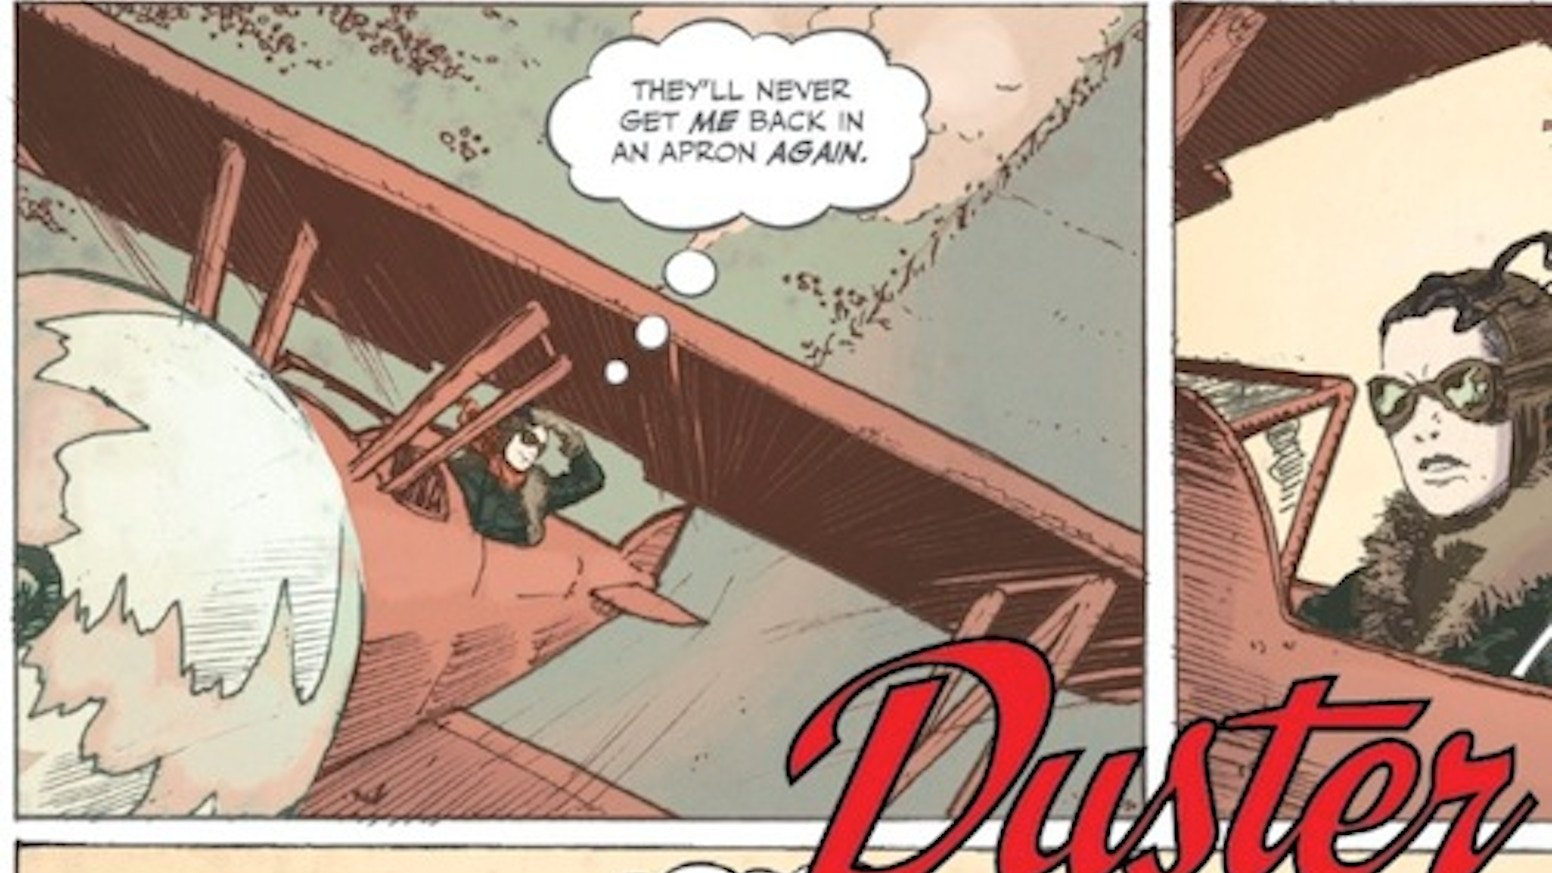 A female cropduster pilot fights to save her daughter from Nazis in 1940's Texas! DOWNLOAD THE FIRST 40 PAGES FREE!